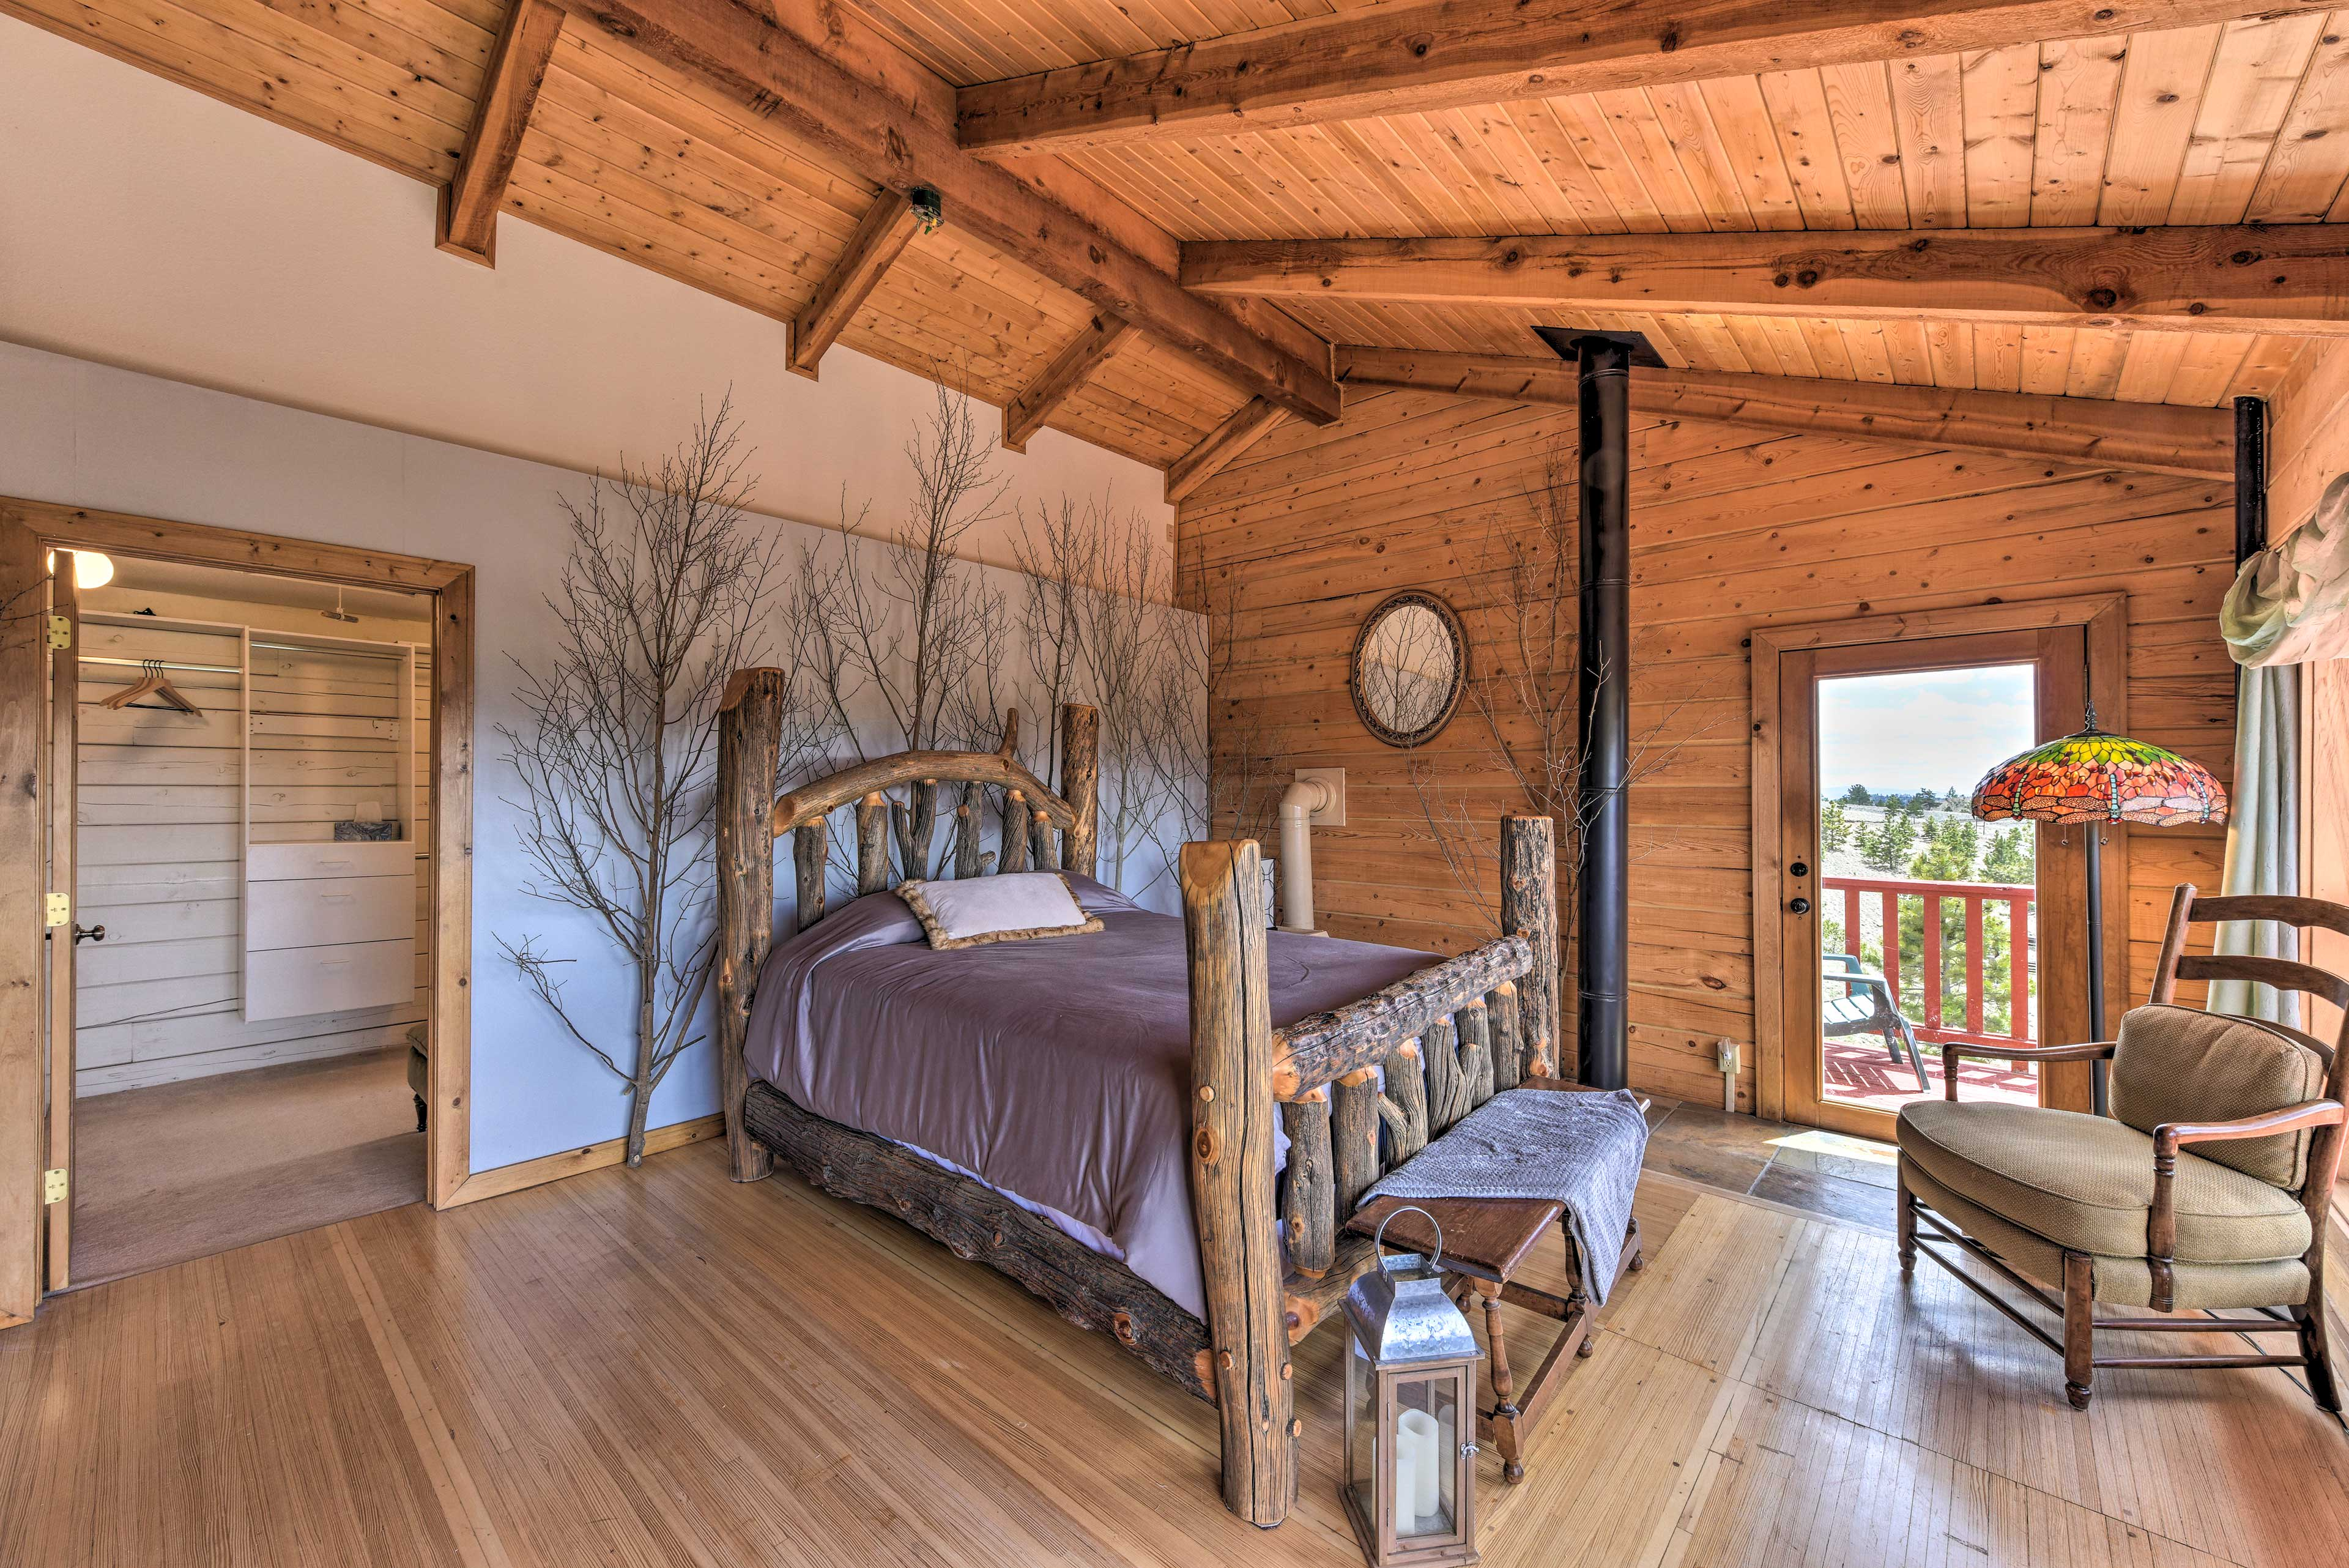 This spacious master bedroom features high ceilings and rustic decor.